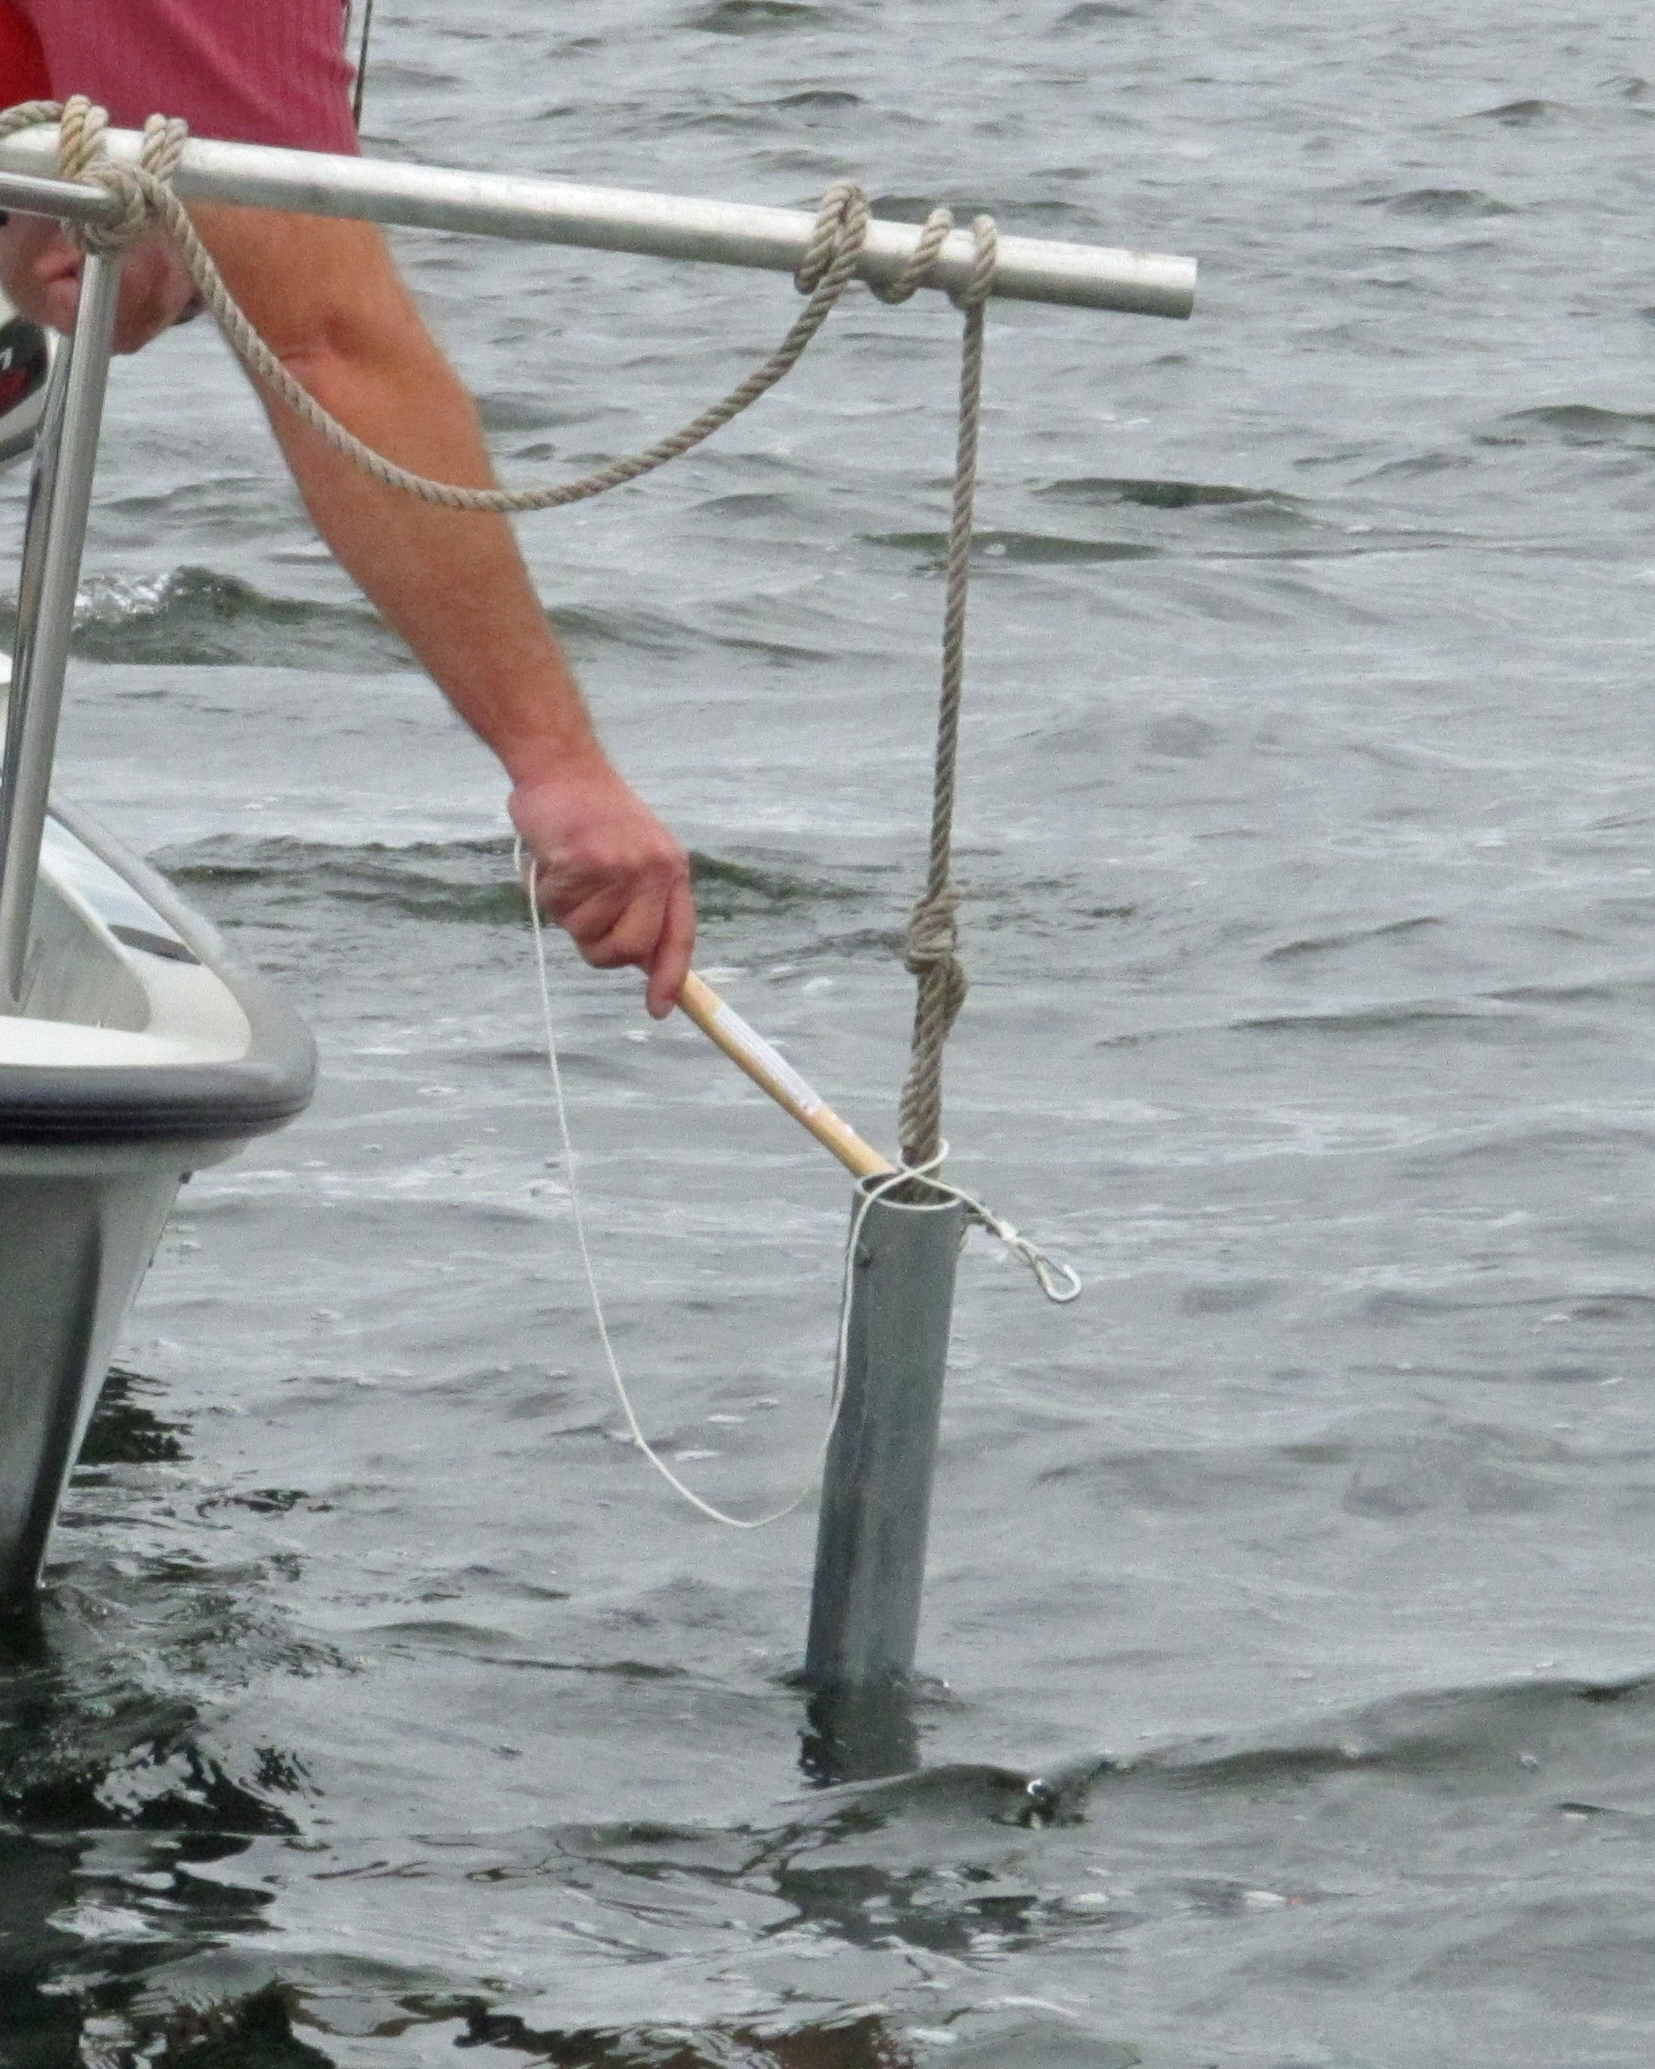 A pipe suspended by cord from a stick is held partly in the water off the side of a small boat, a person's hand holds a metal bar to strike the pipe.